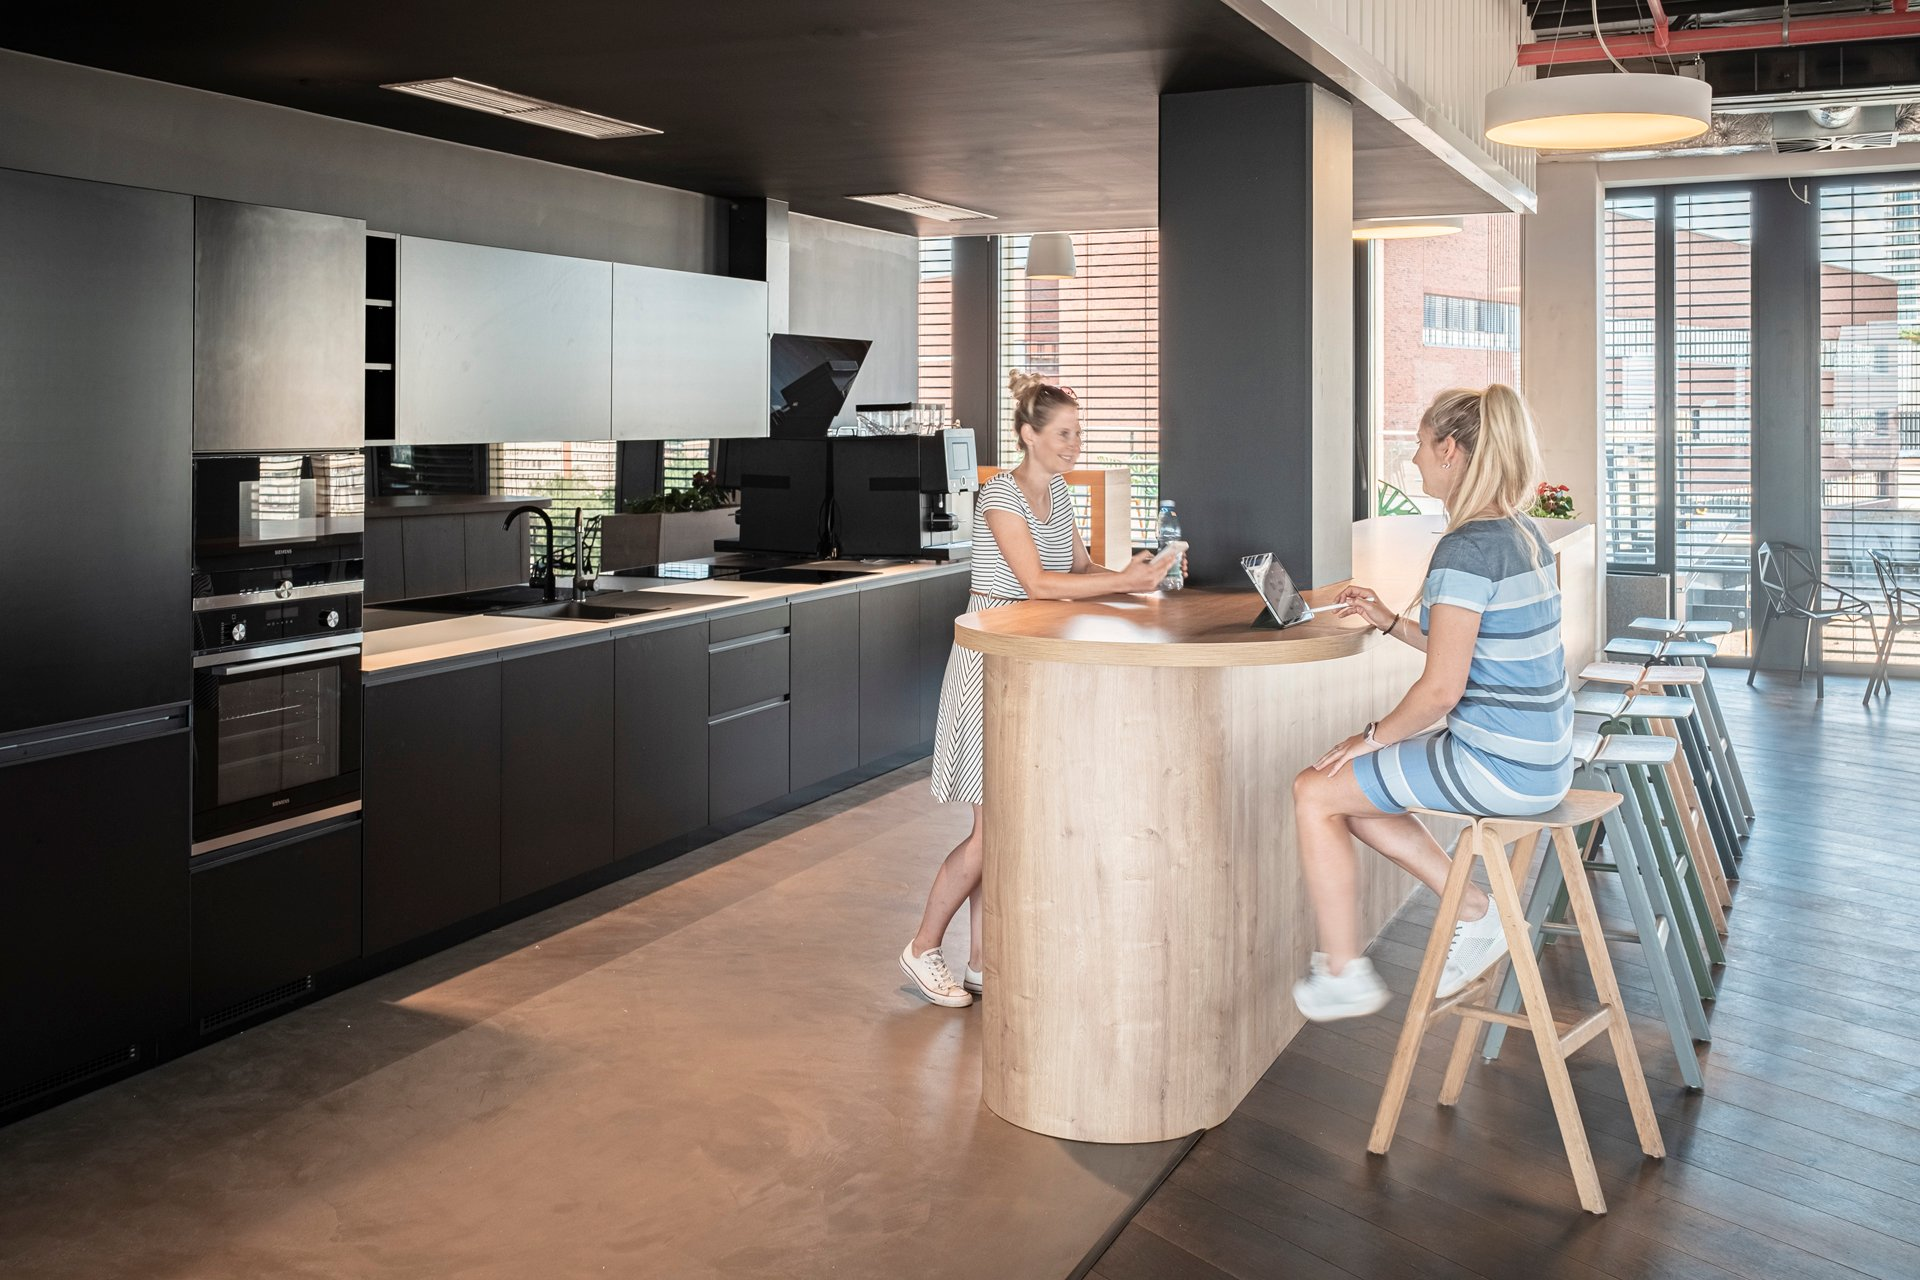 Kitchen for employees